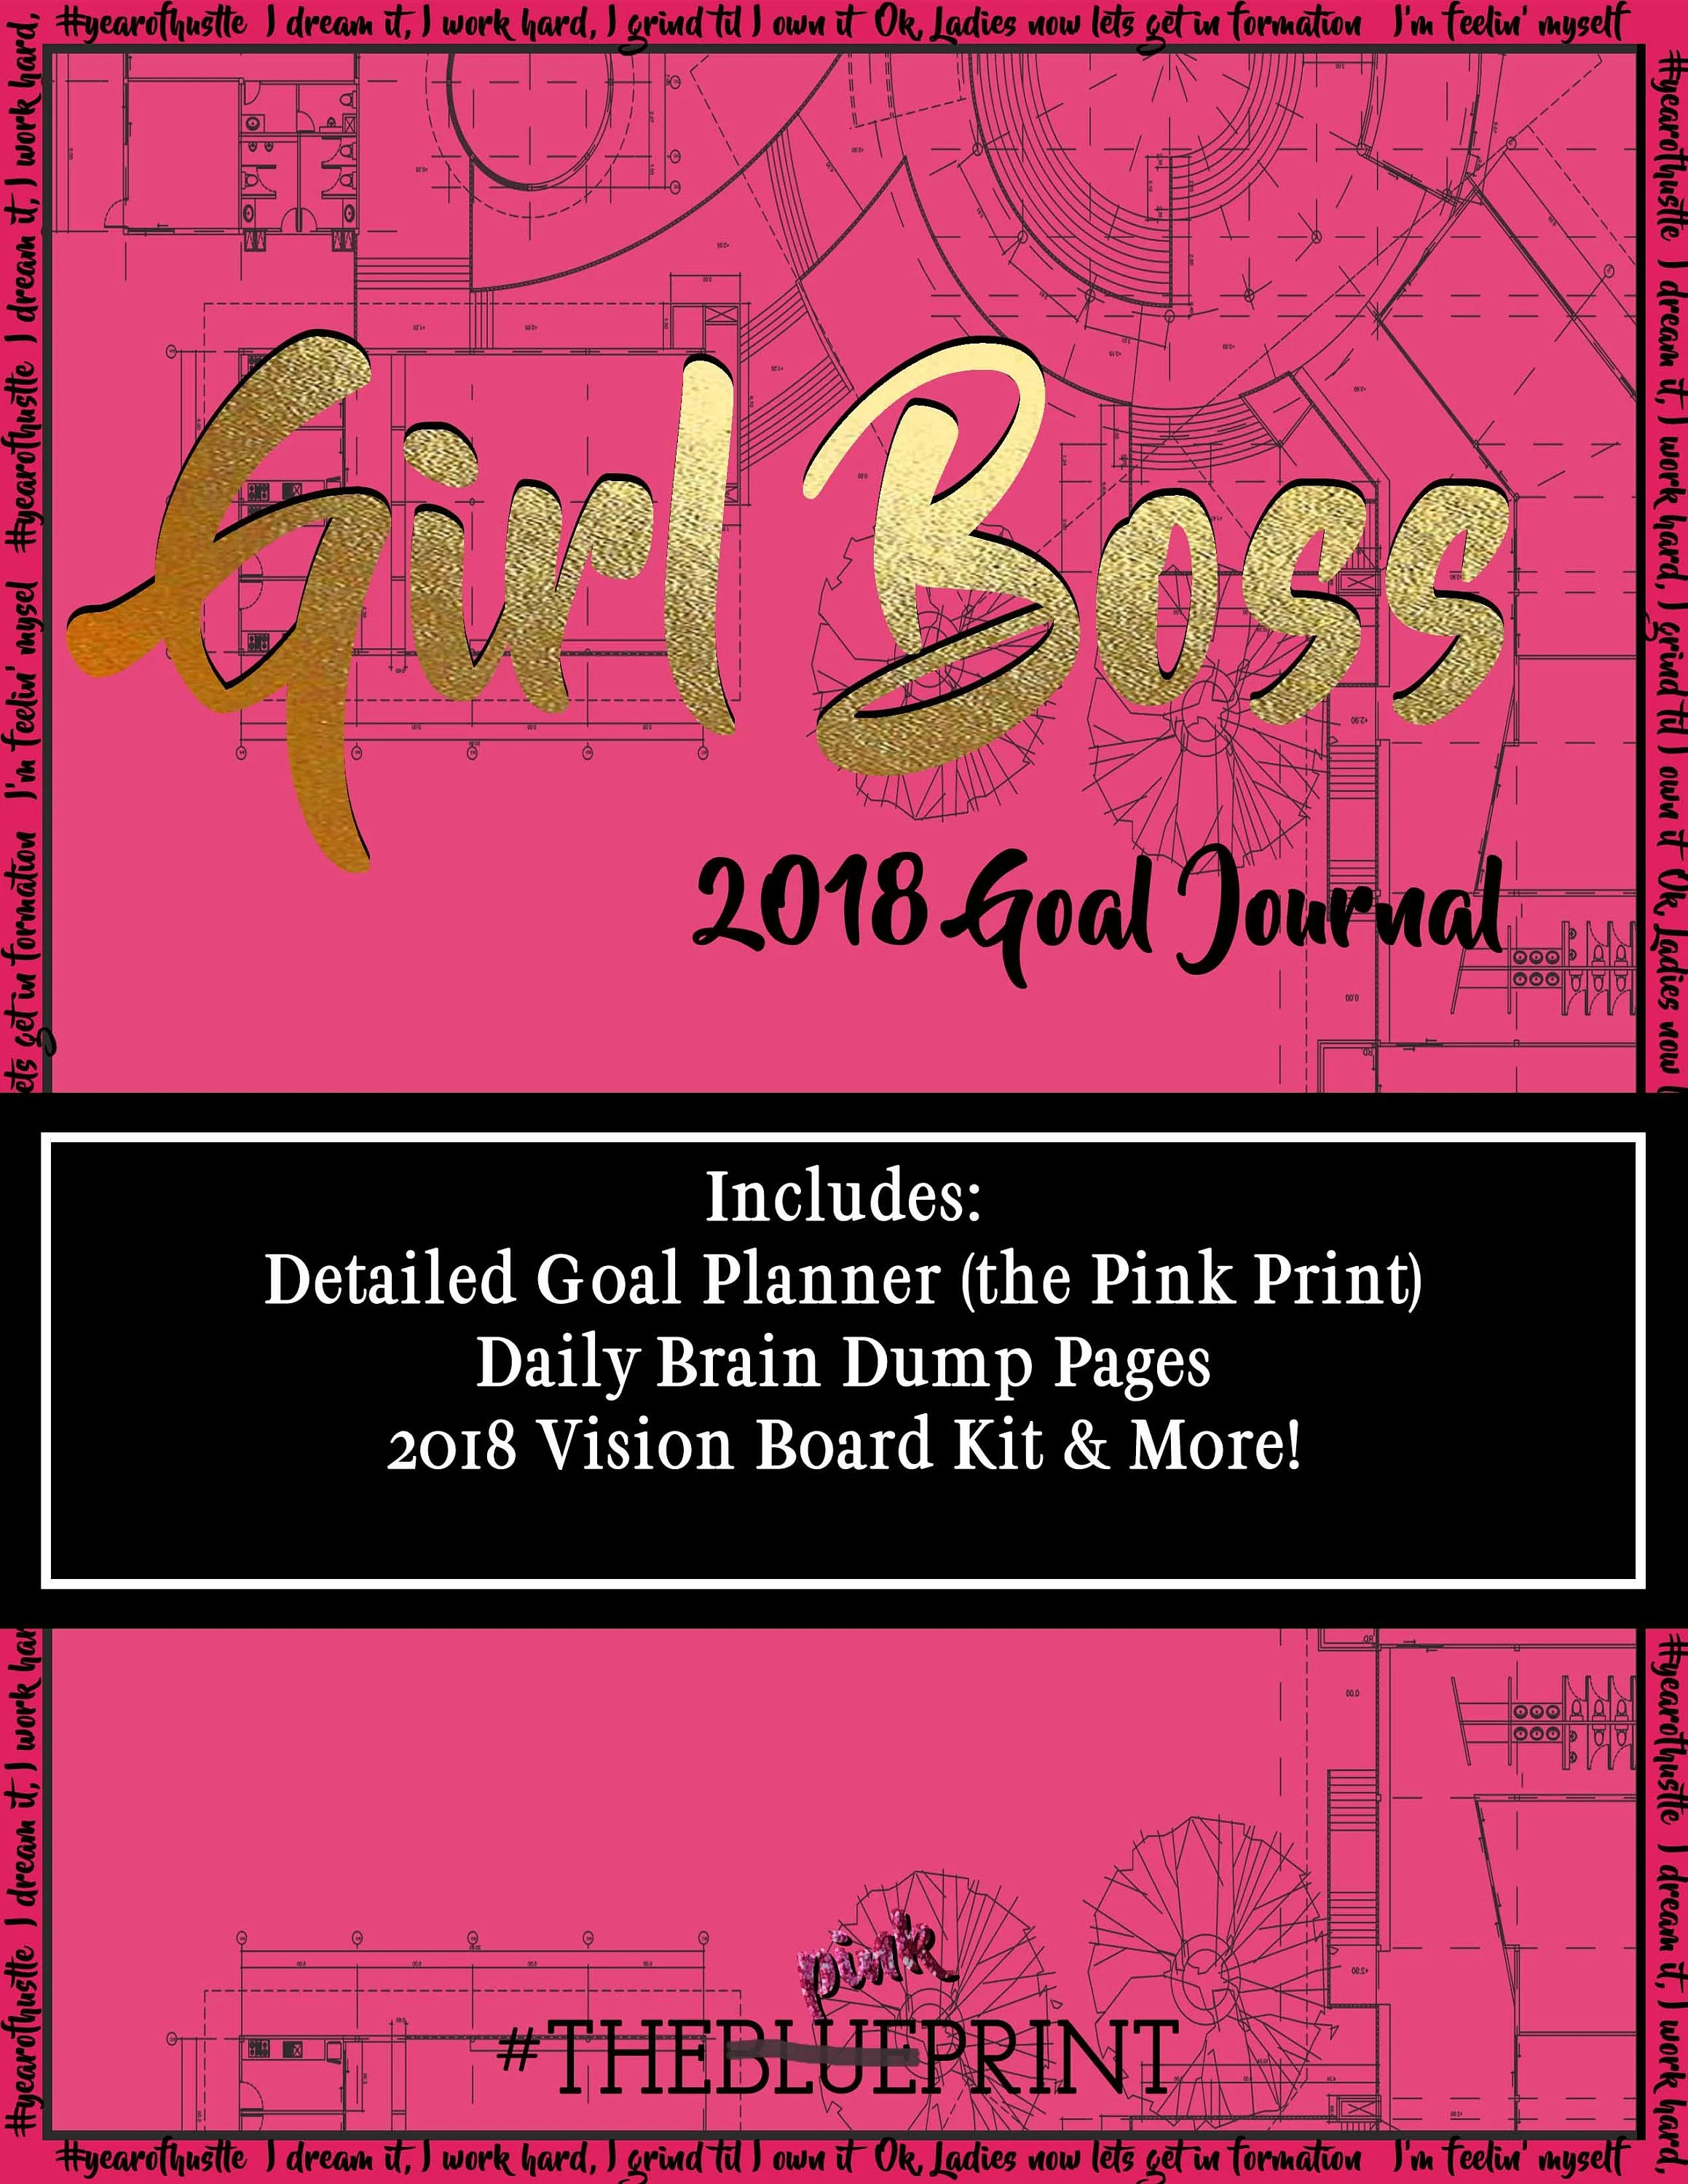 2nd Annual Girl Boss Goal Journal Goal Planner Goal